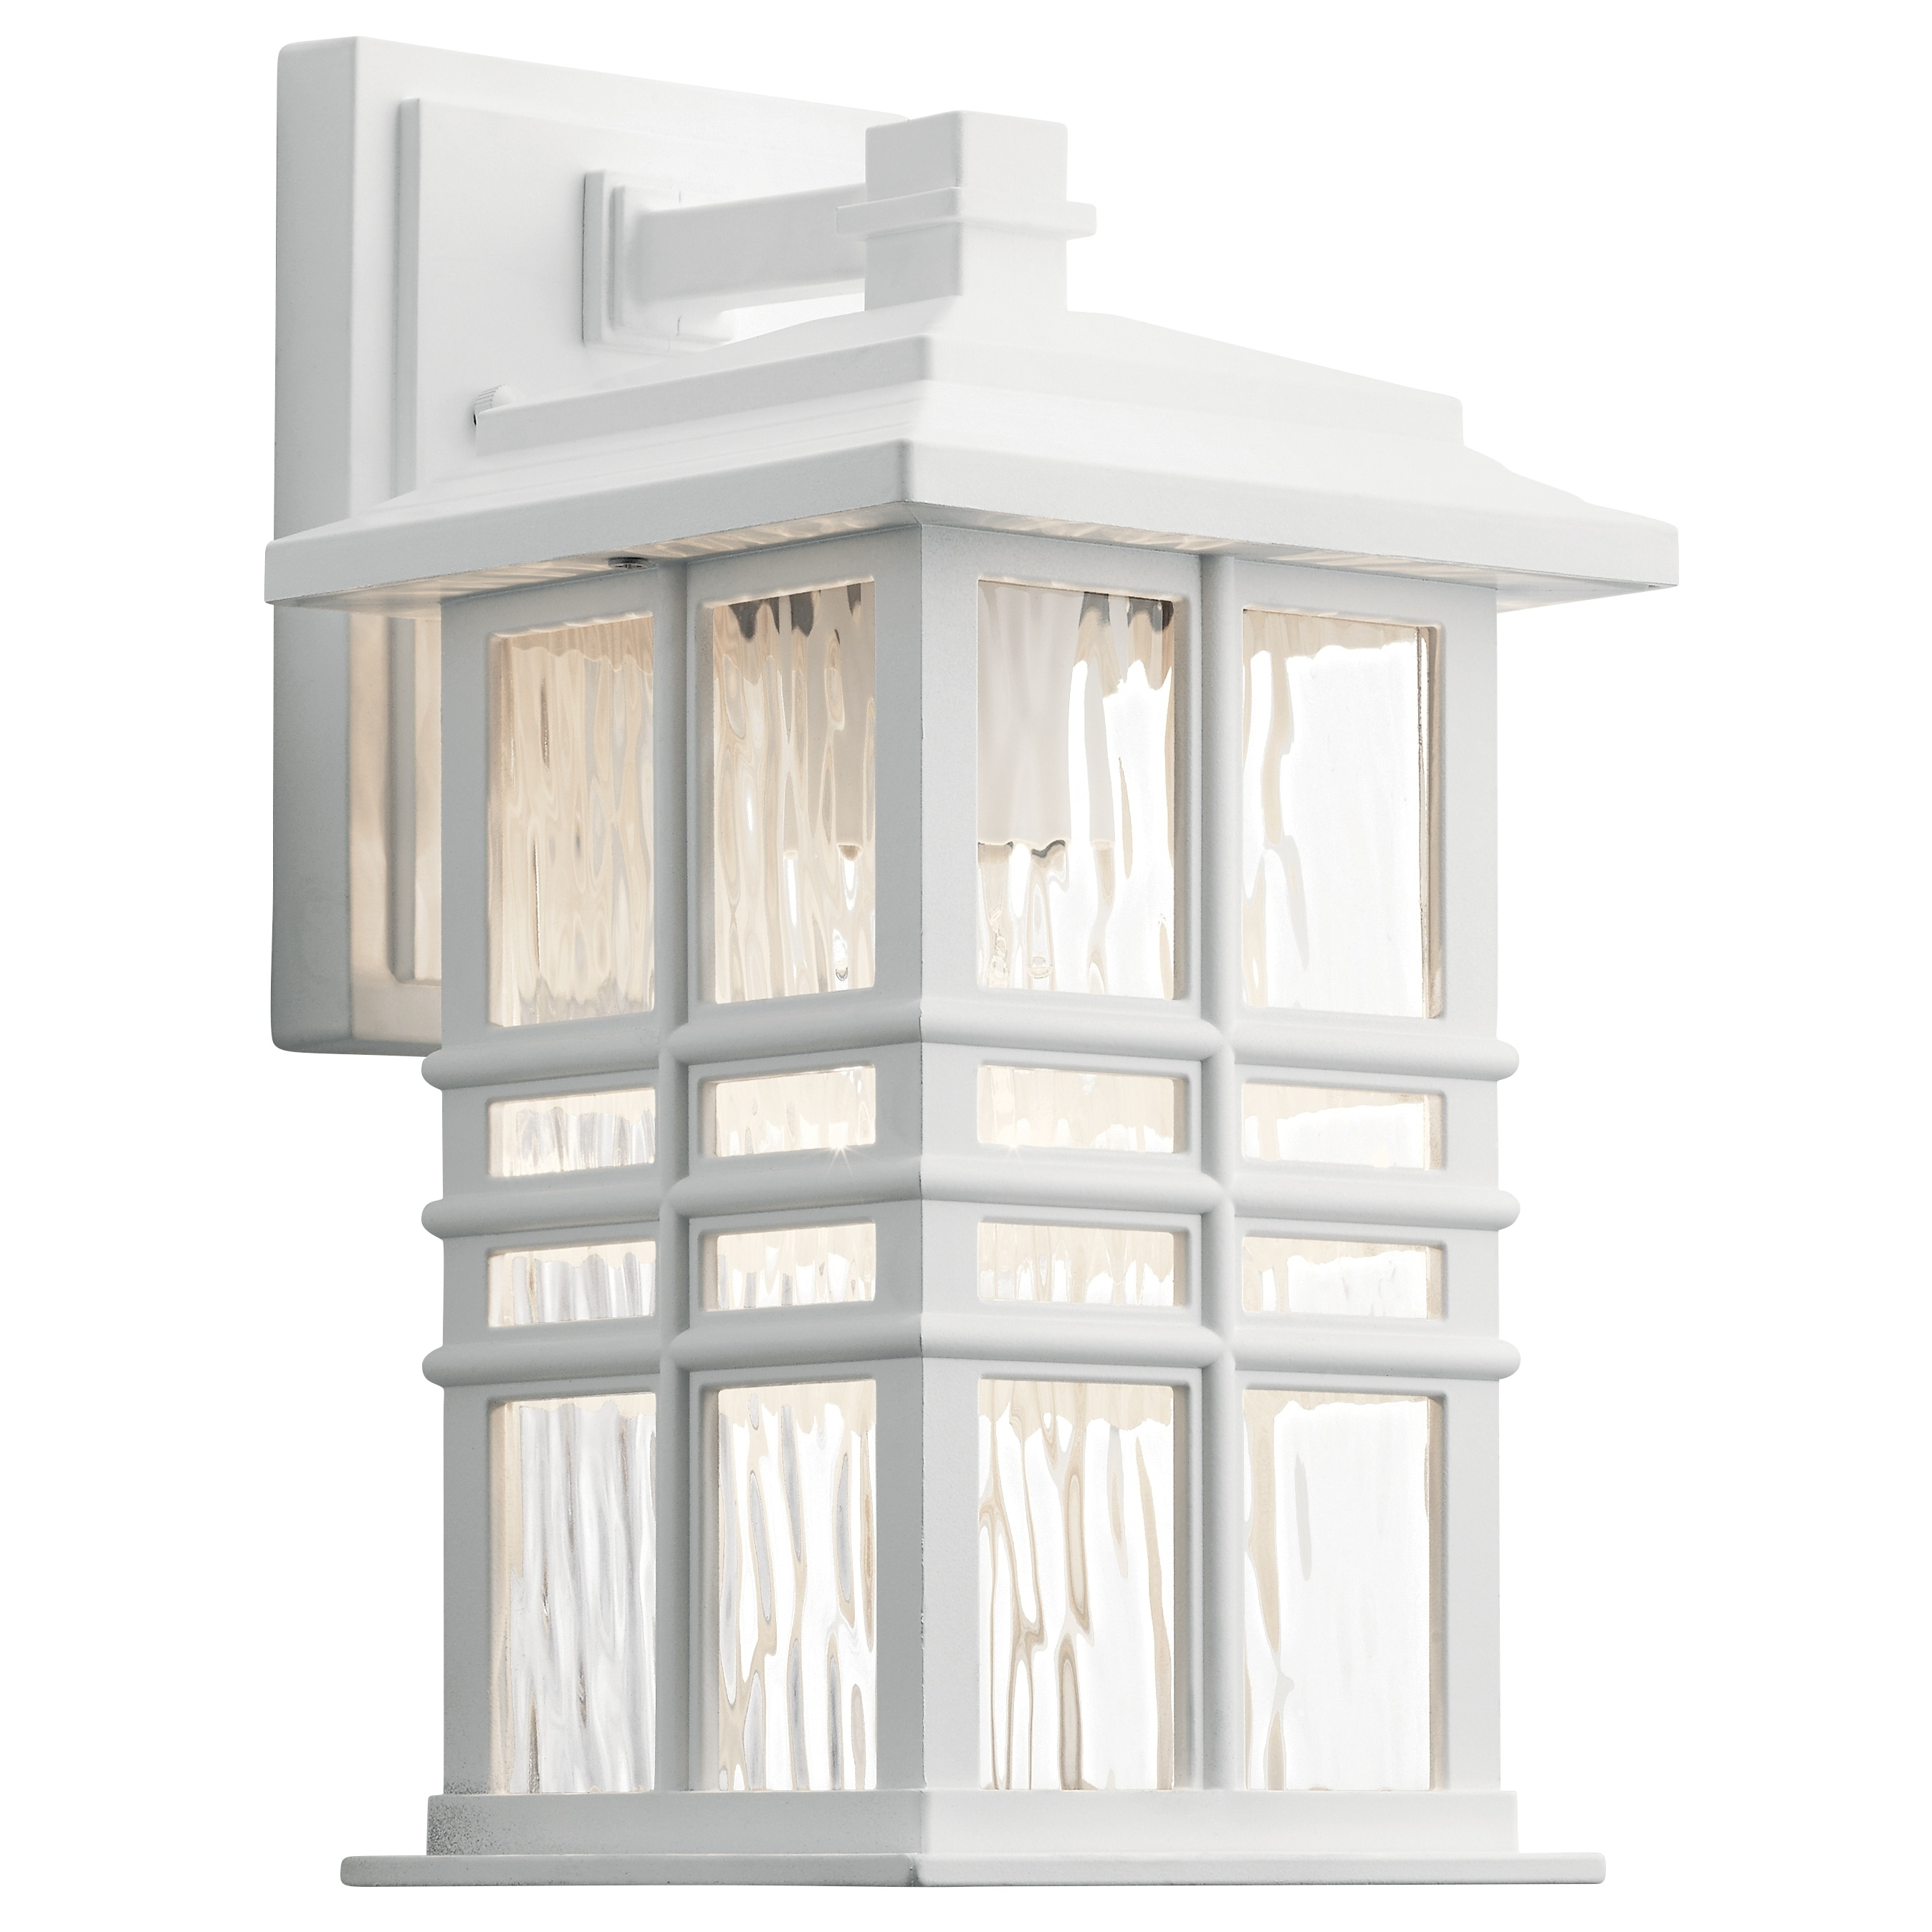 Shop Black Friday Deals On Kichler Beacon Square 1 Light White Outdoor Wall Sconce Overstock 27071831 12 X 6 5